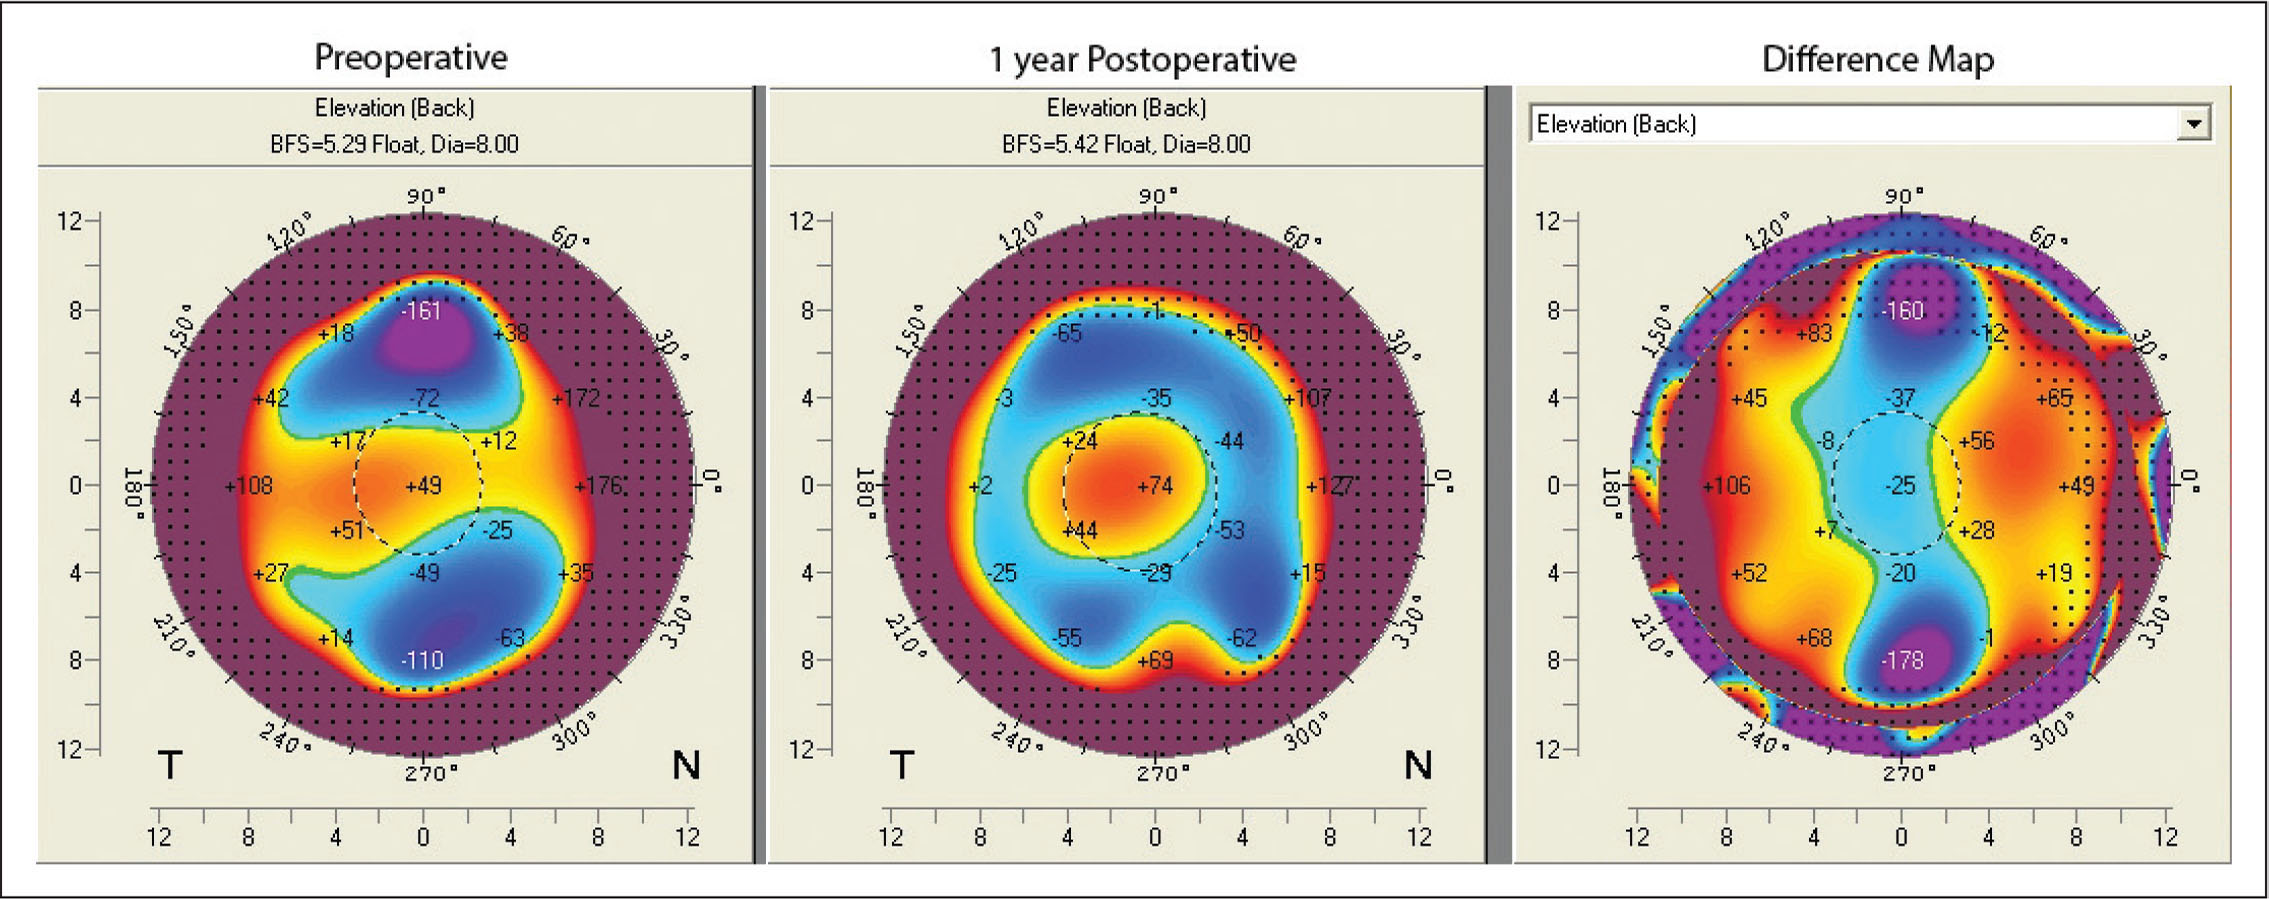 Pentacam corneal tomography (Oculus Optikgeräte, Wetzlar, Germany) showing the posterior elevation from the preoperative visit in 2017, 1-year postoperative visit in 2018, and difference map. There is improvement in regularity in the midperiphery with a small amount of central elevation.